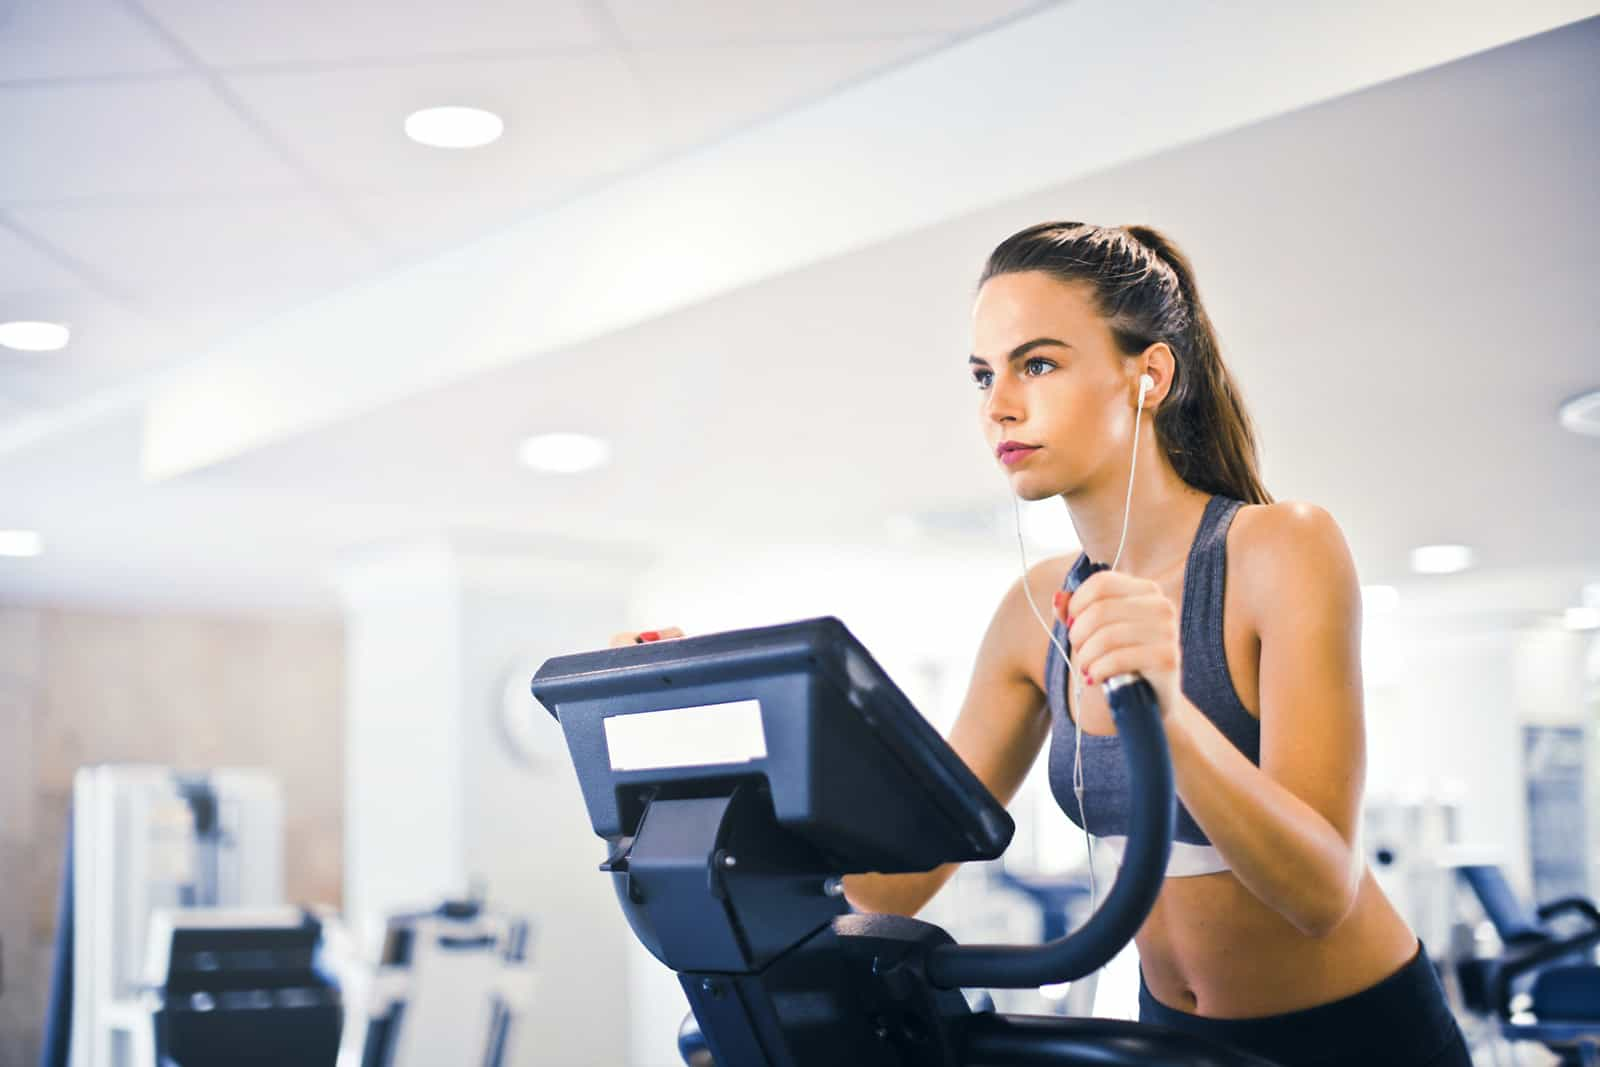 woman training on a treadmill in the gyim